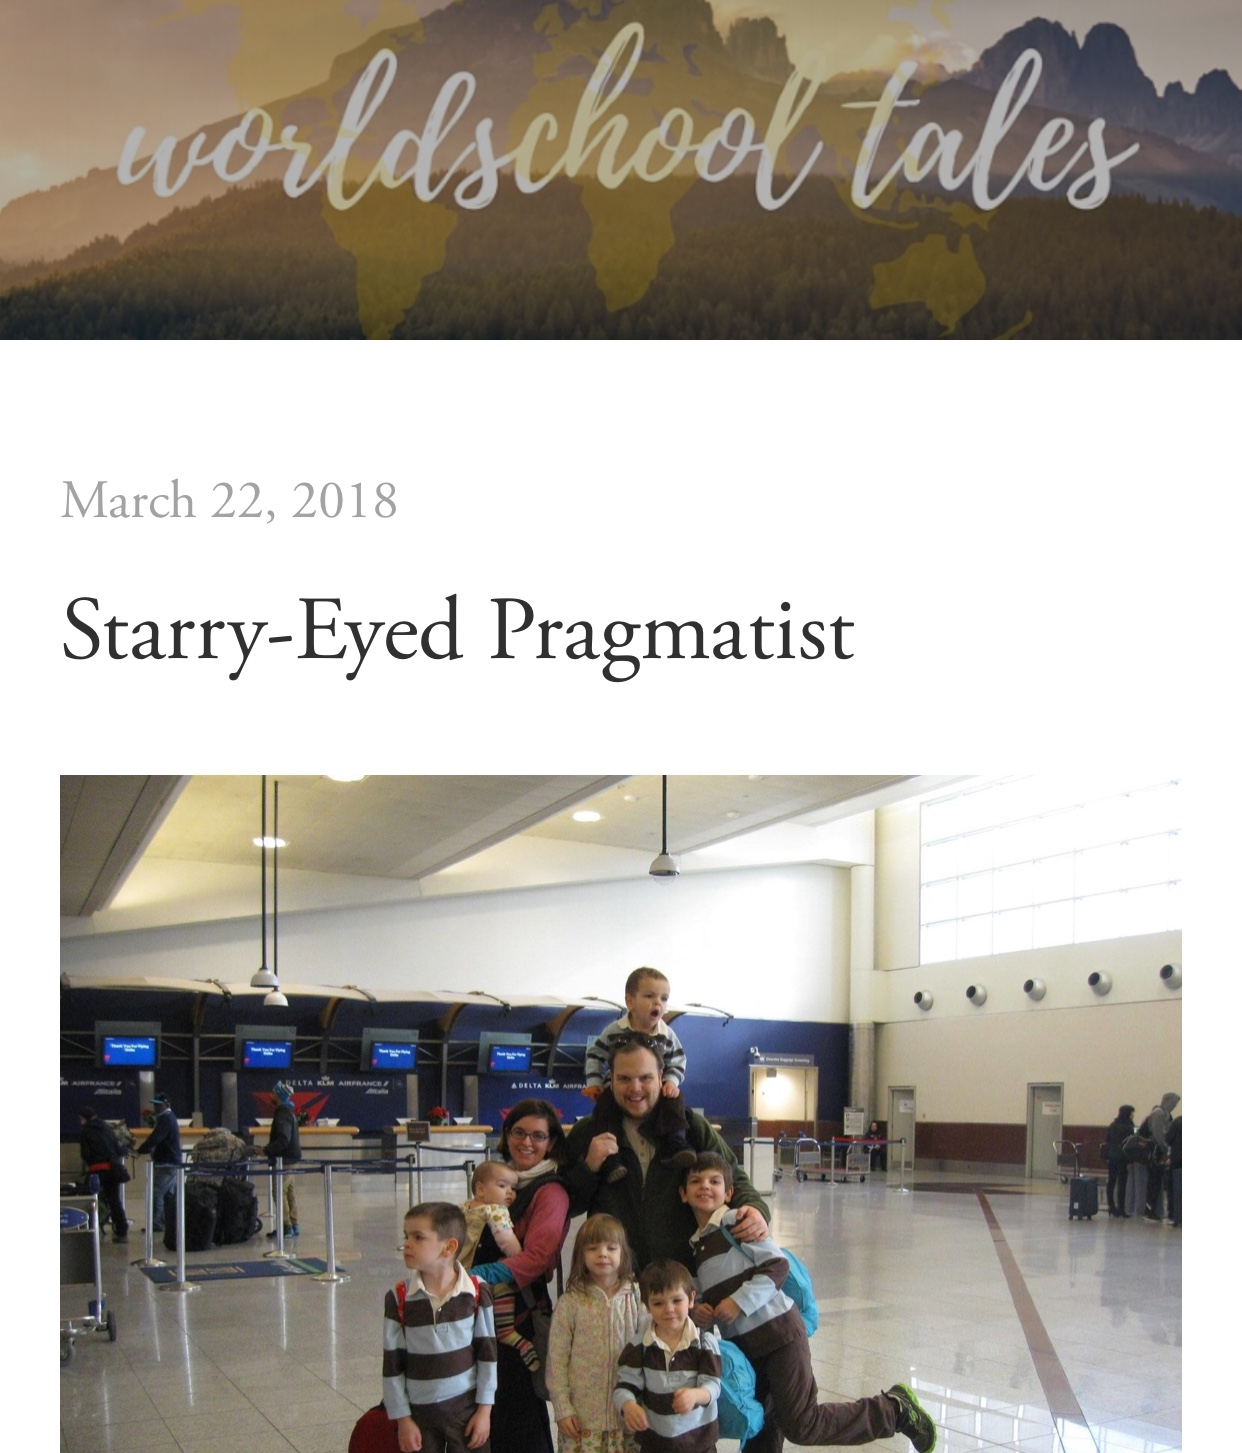 Starry-Eyed Pragmatist Worldschool Tales interview on Haphazardly Homegrown